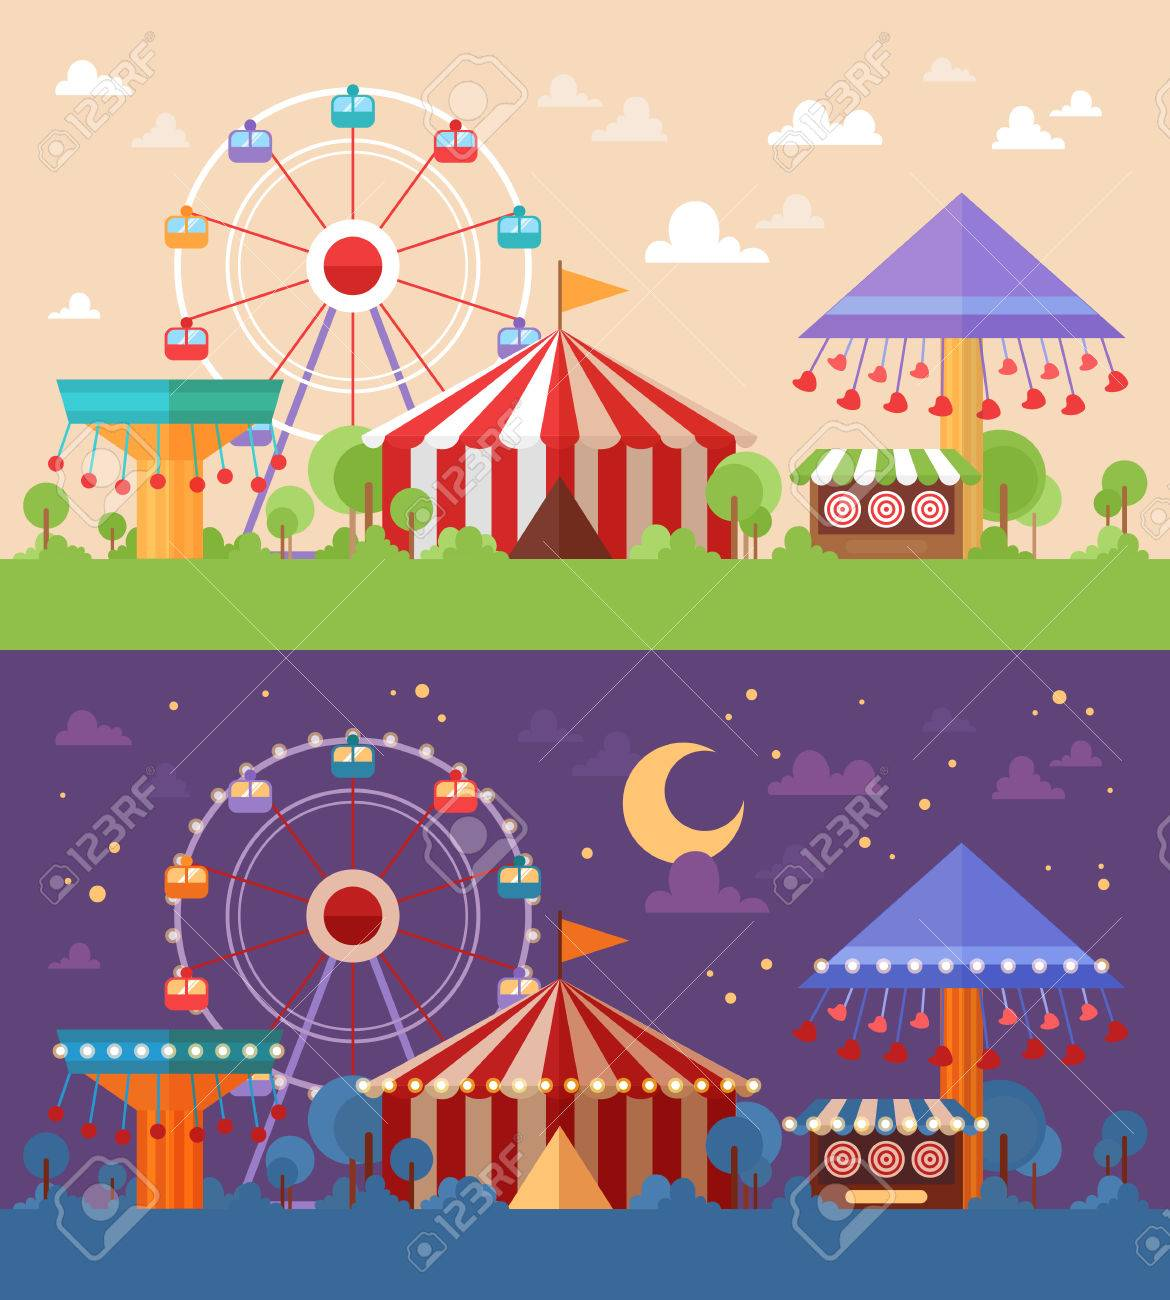 Flat Retro Funfair Scenery with amusement attractions and carousels day and night color scheme versions - 51011269